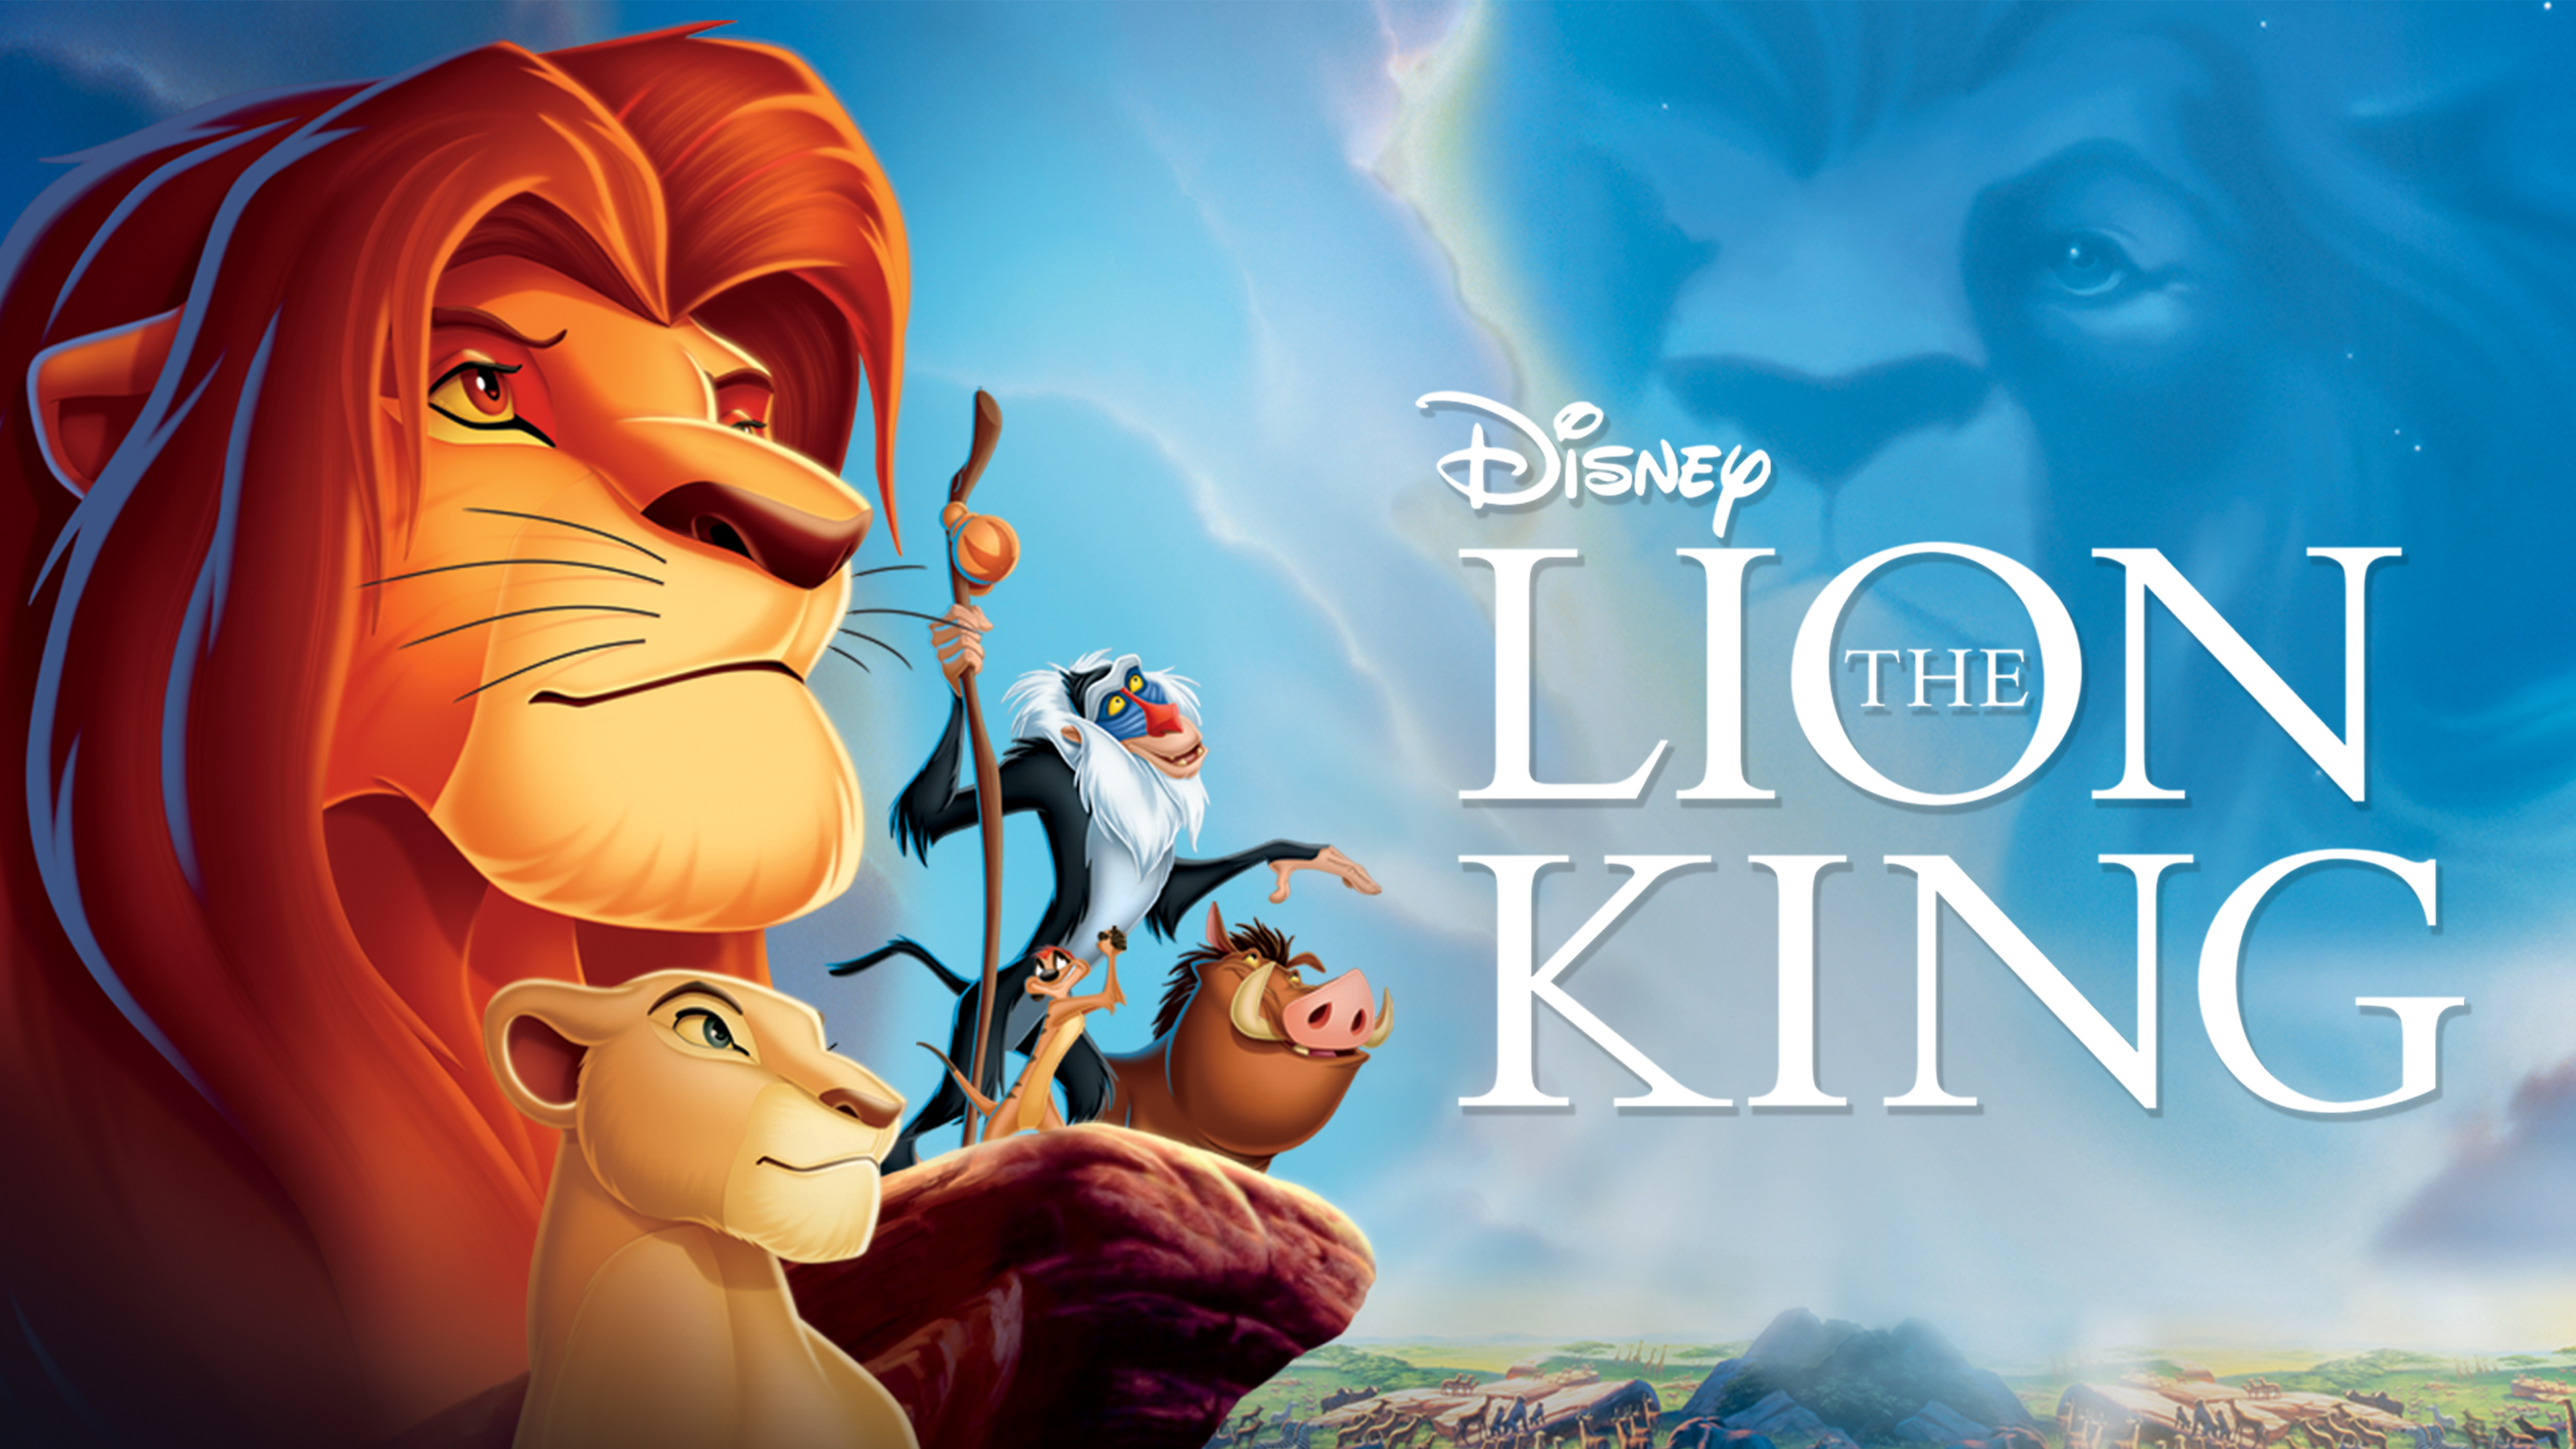 Watch The Lion King Full Movie Disney